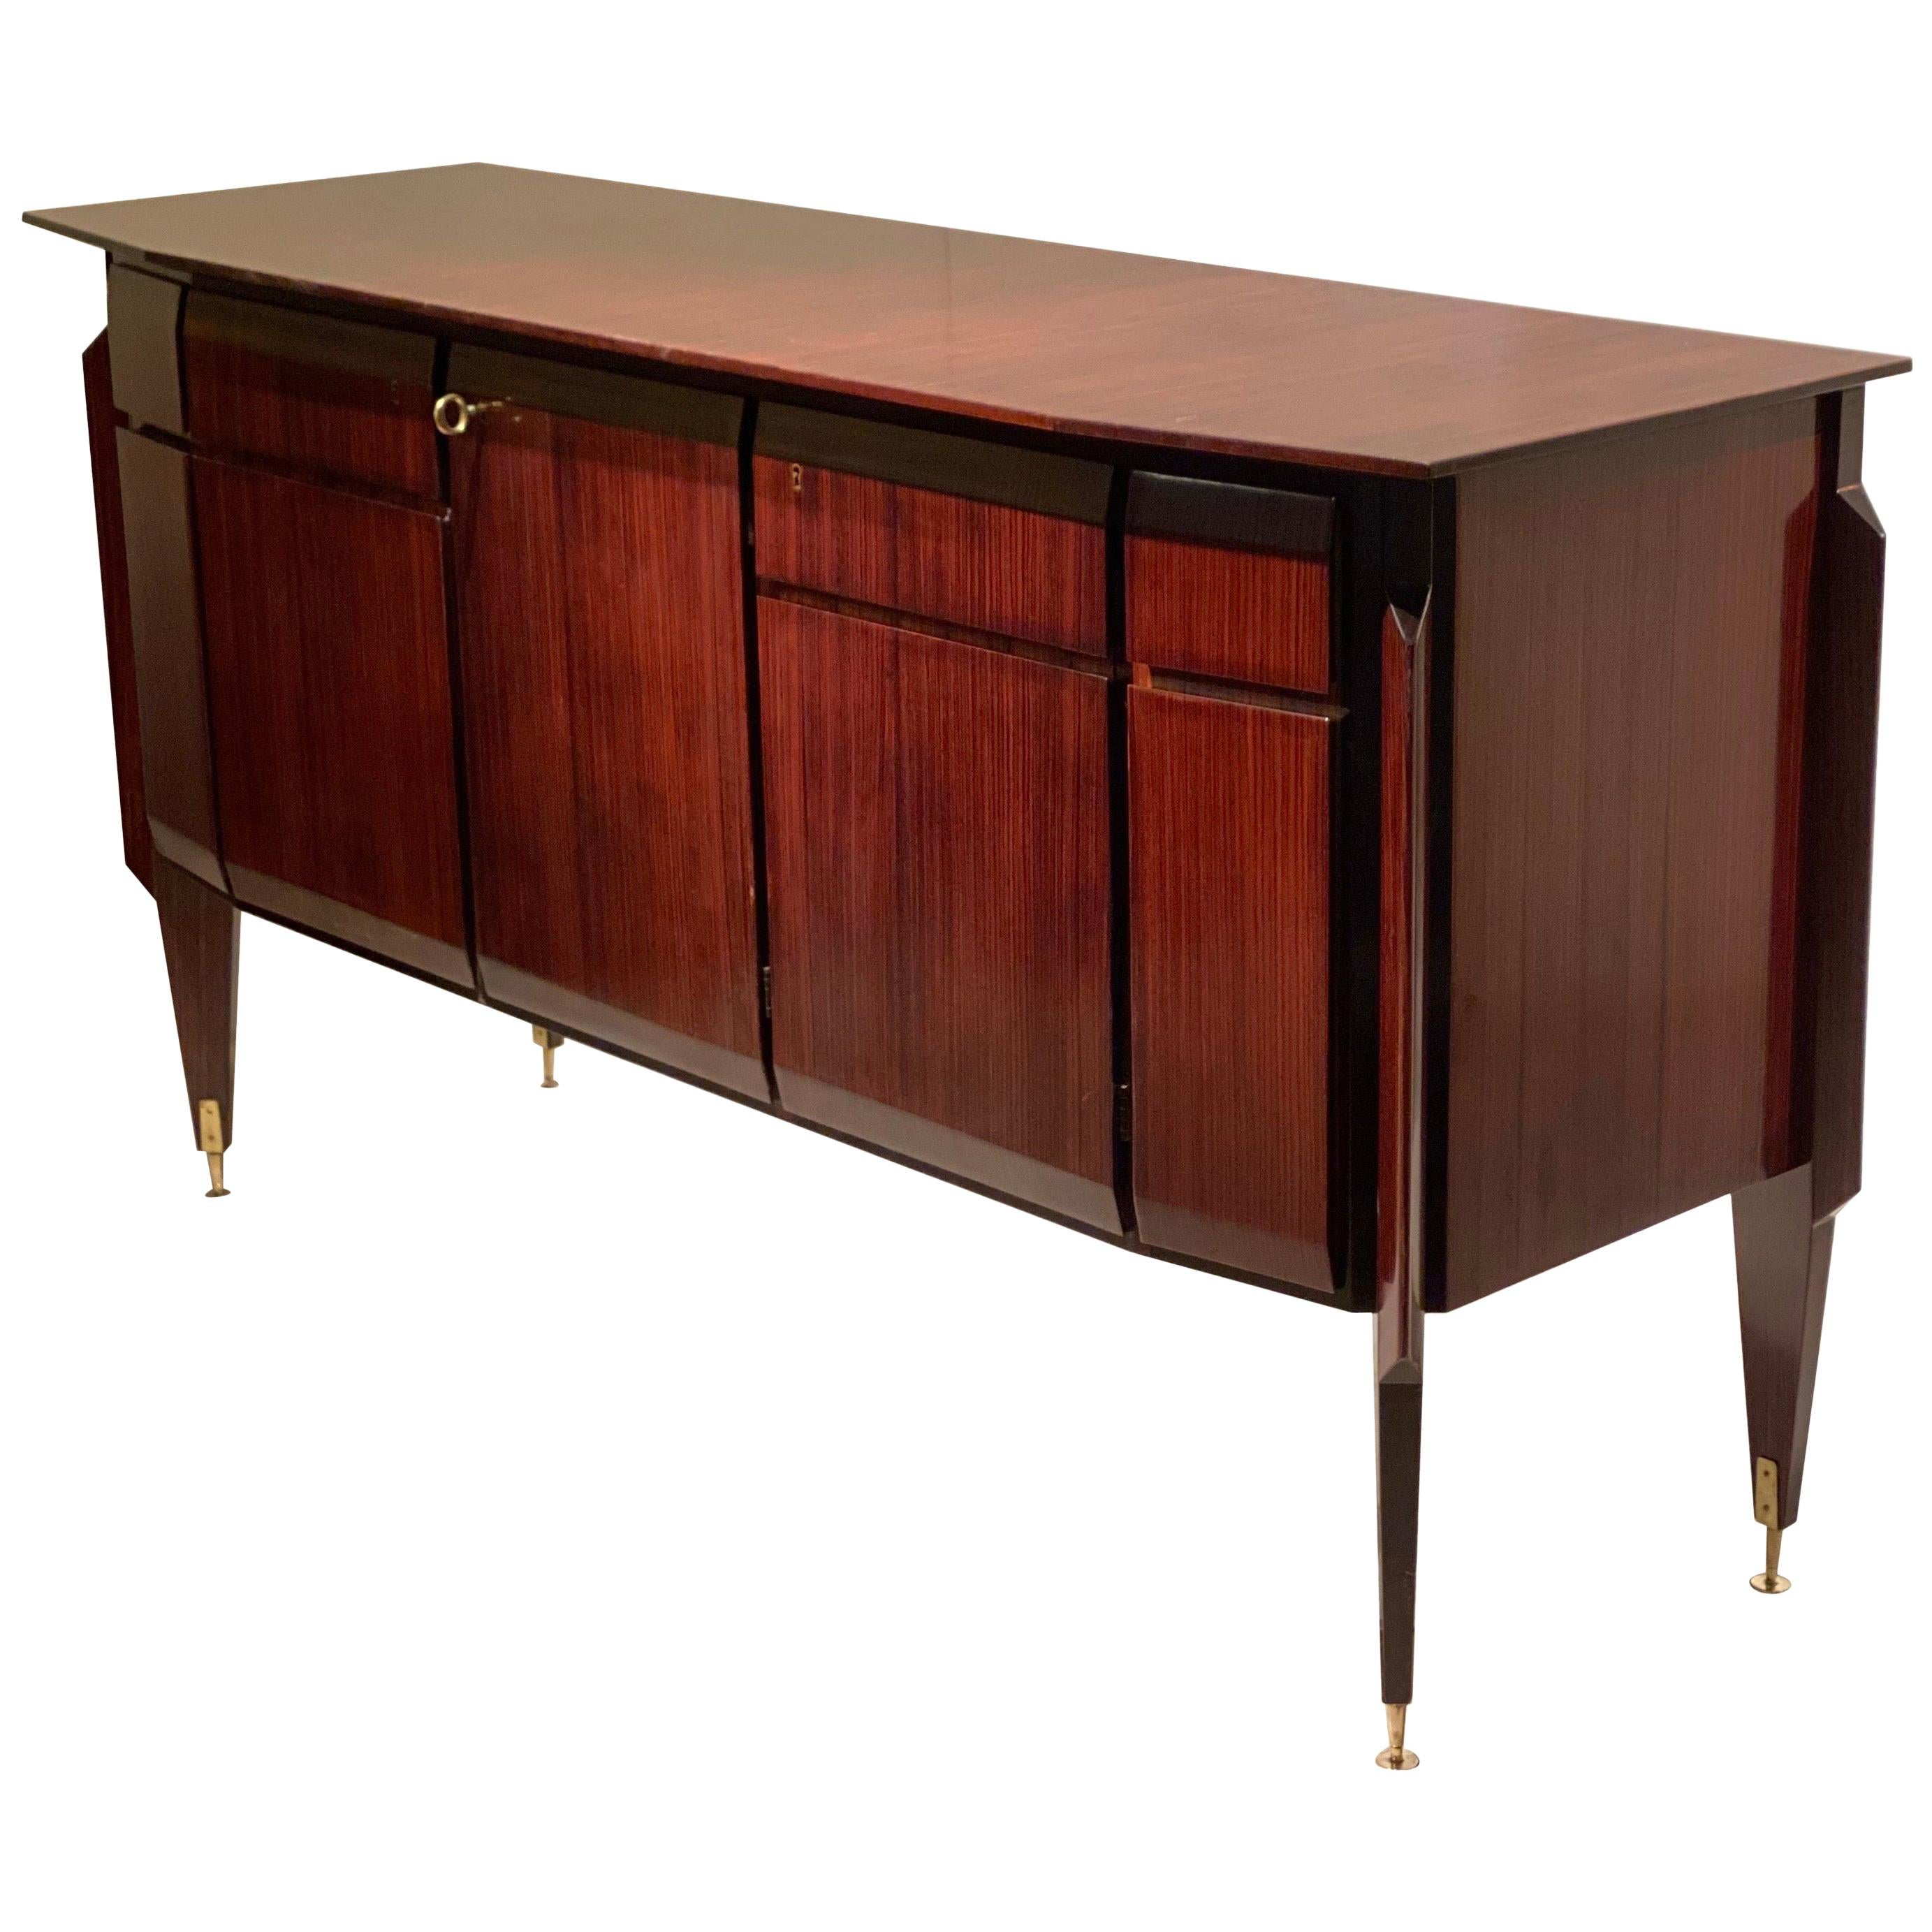 Sideboard in the Style of Franco Albini, Italy, 1950s